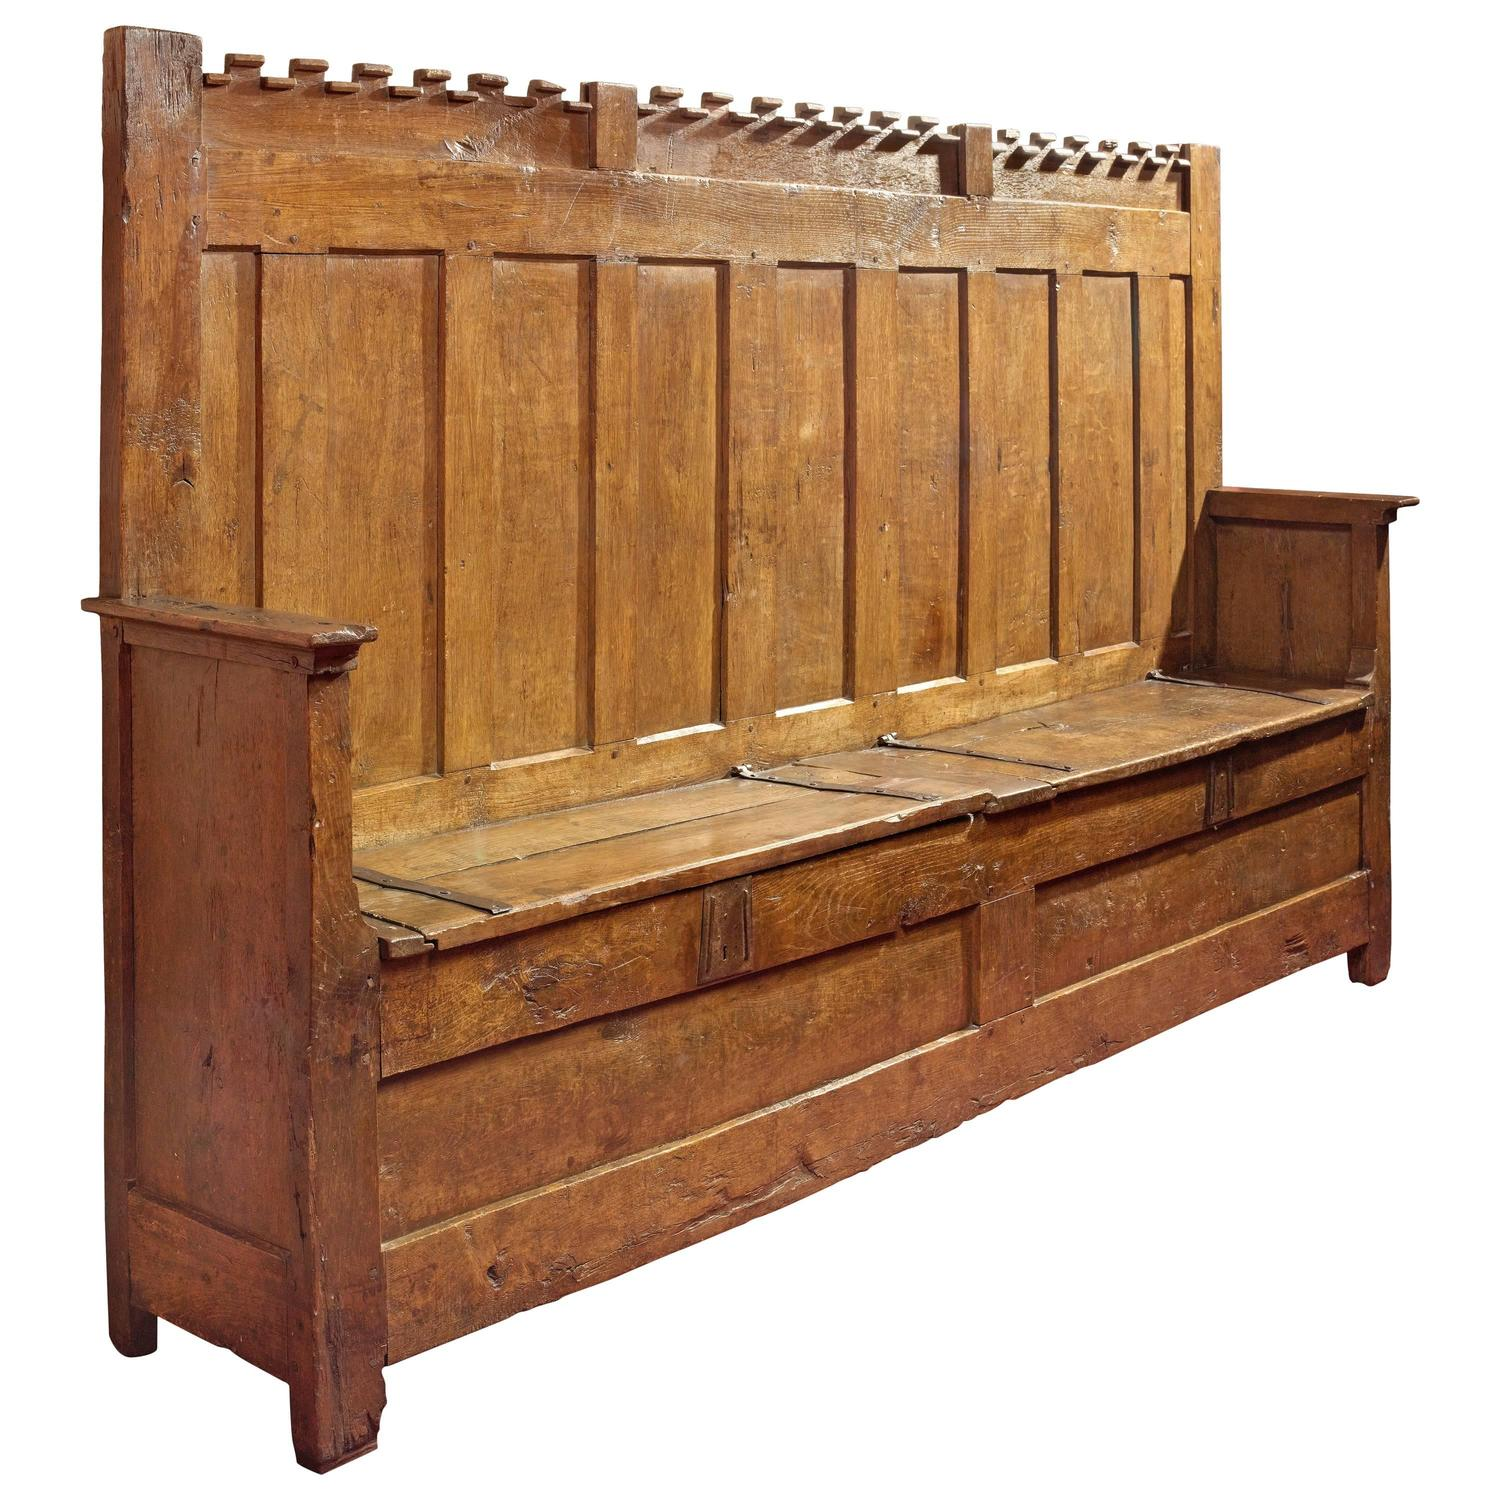 15th century french gothic highback bench known as an archebanc with hasp locks for sale at 1stdibs